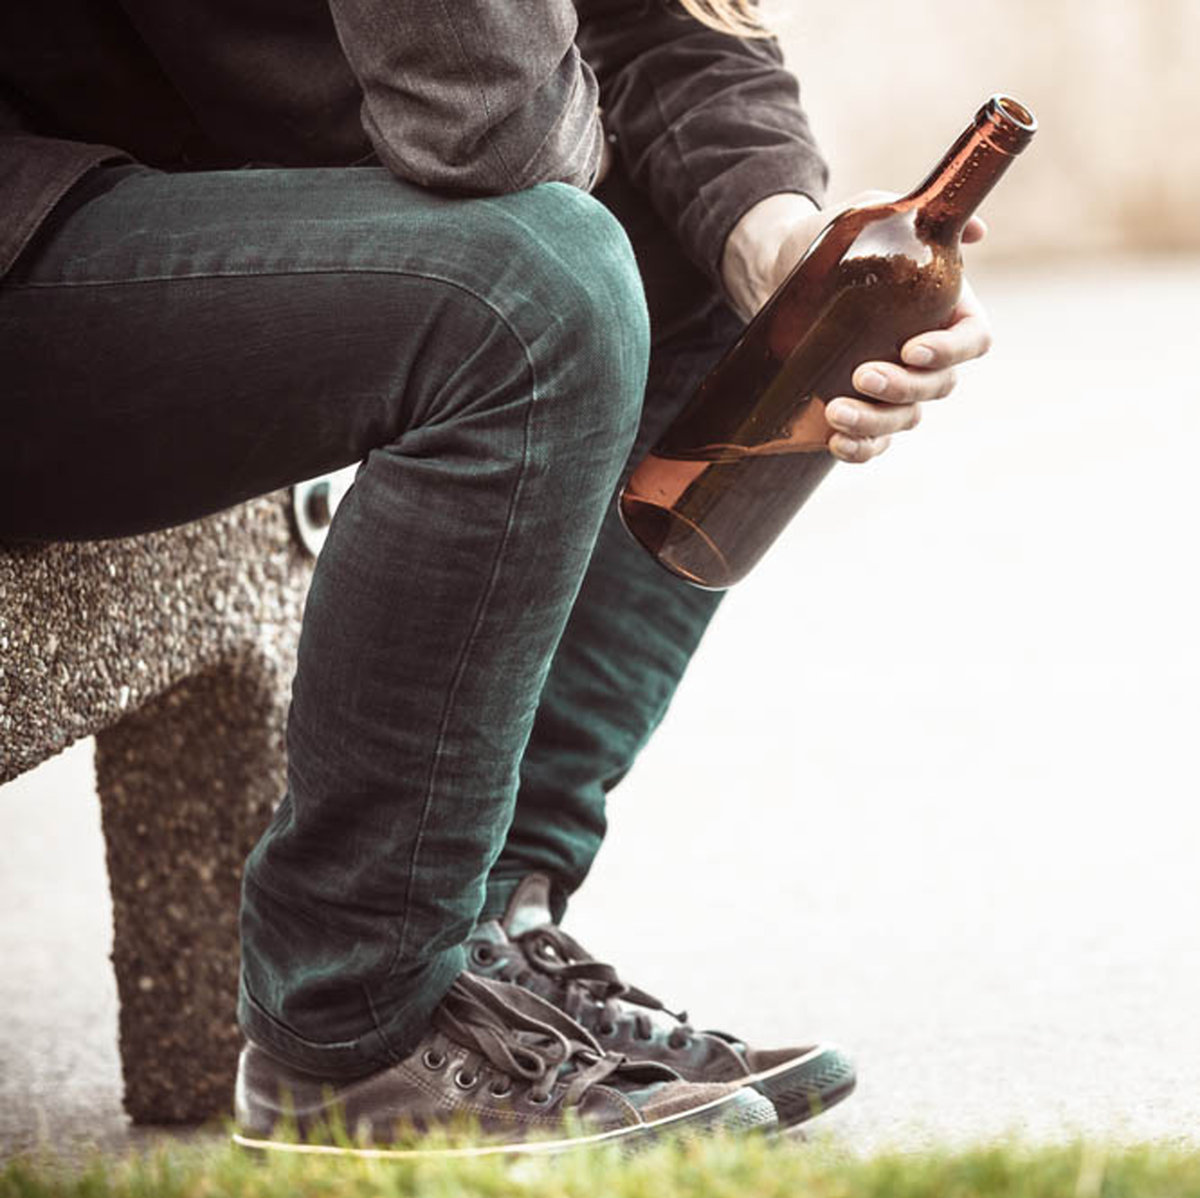 Man drinking alcohol on a bench